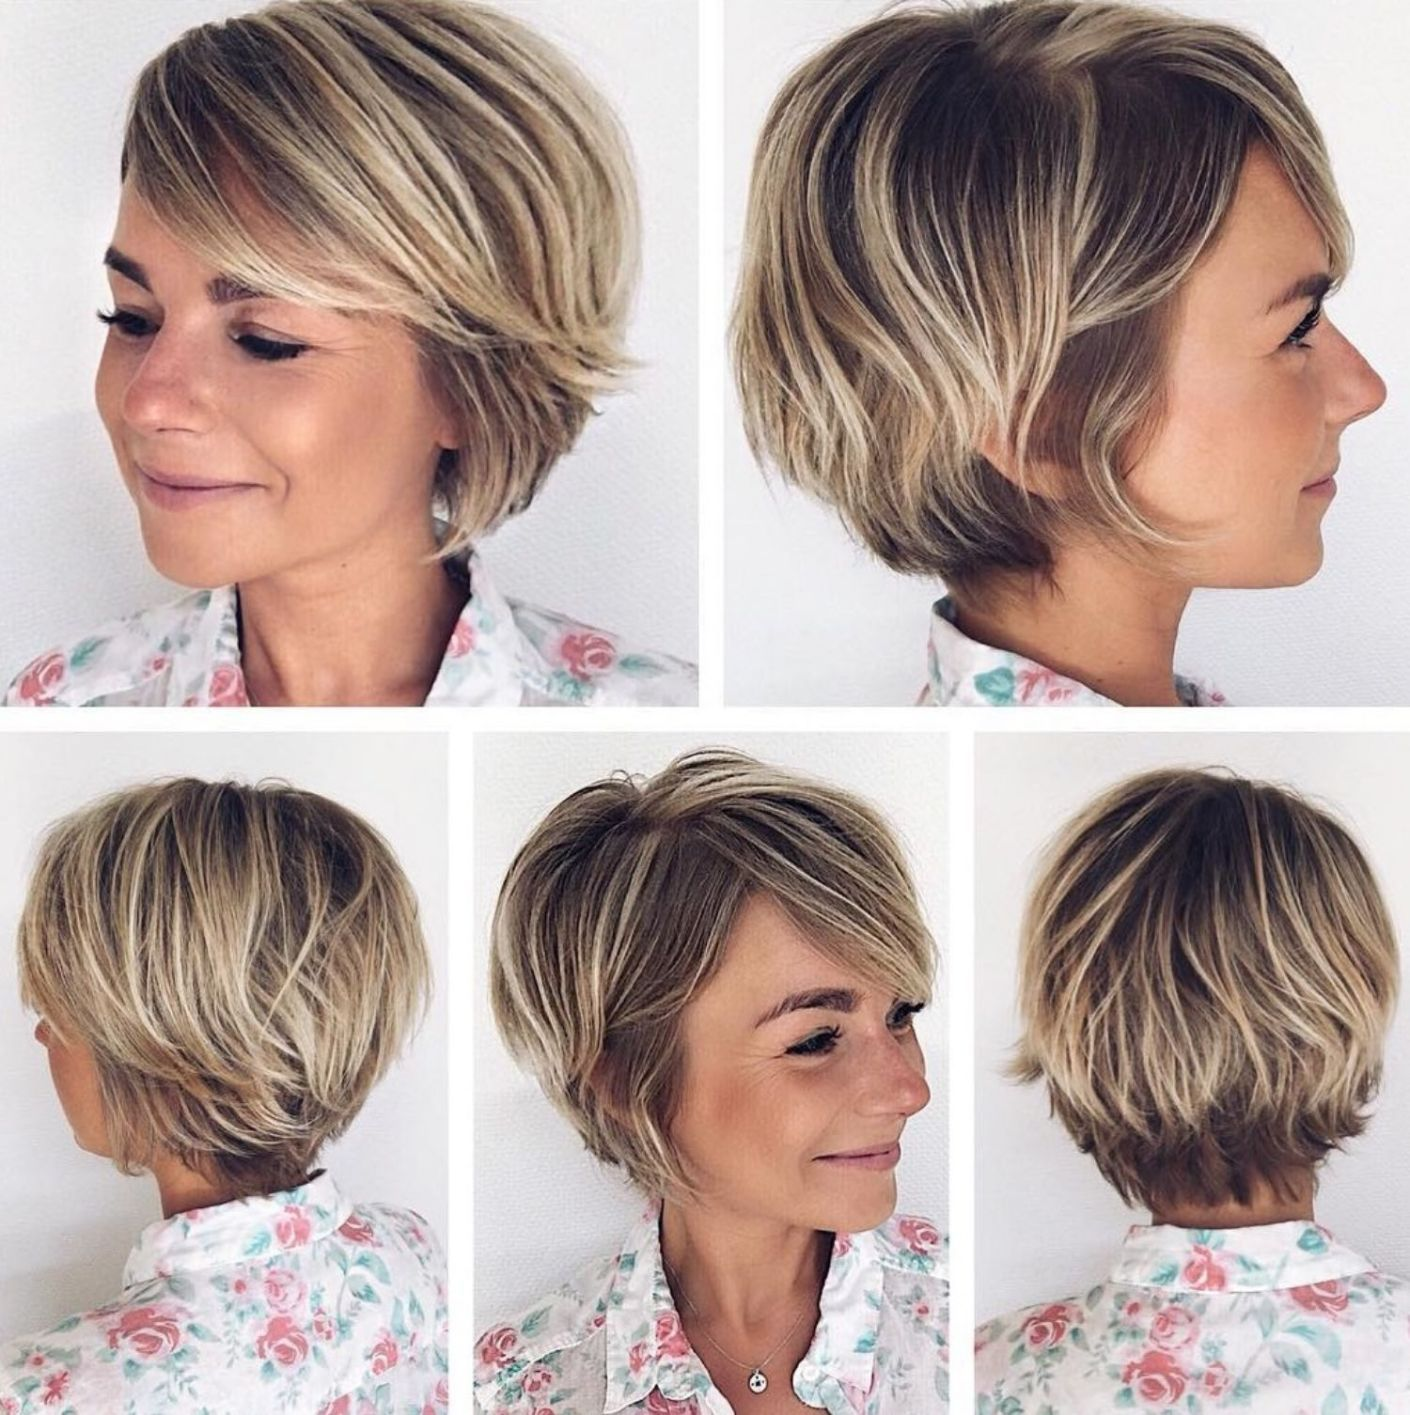 Pixie Bob With Side Bangs And Blonde Highlights In 2020 Thick Hair Styles Short Hair Styles Fine Hair